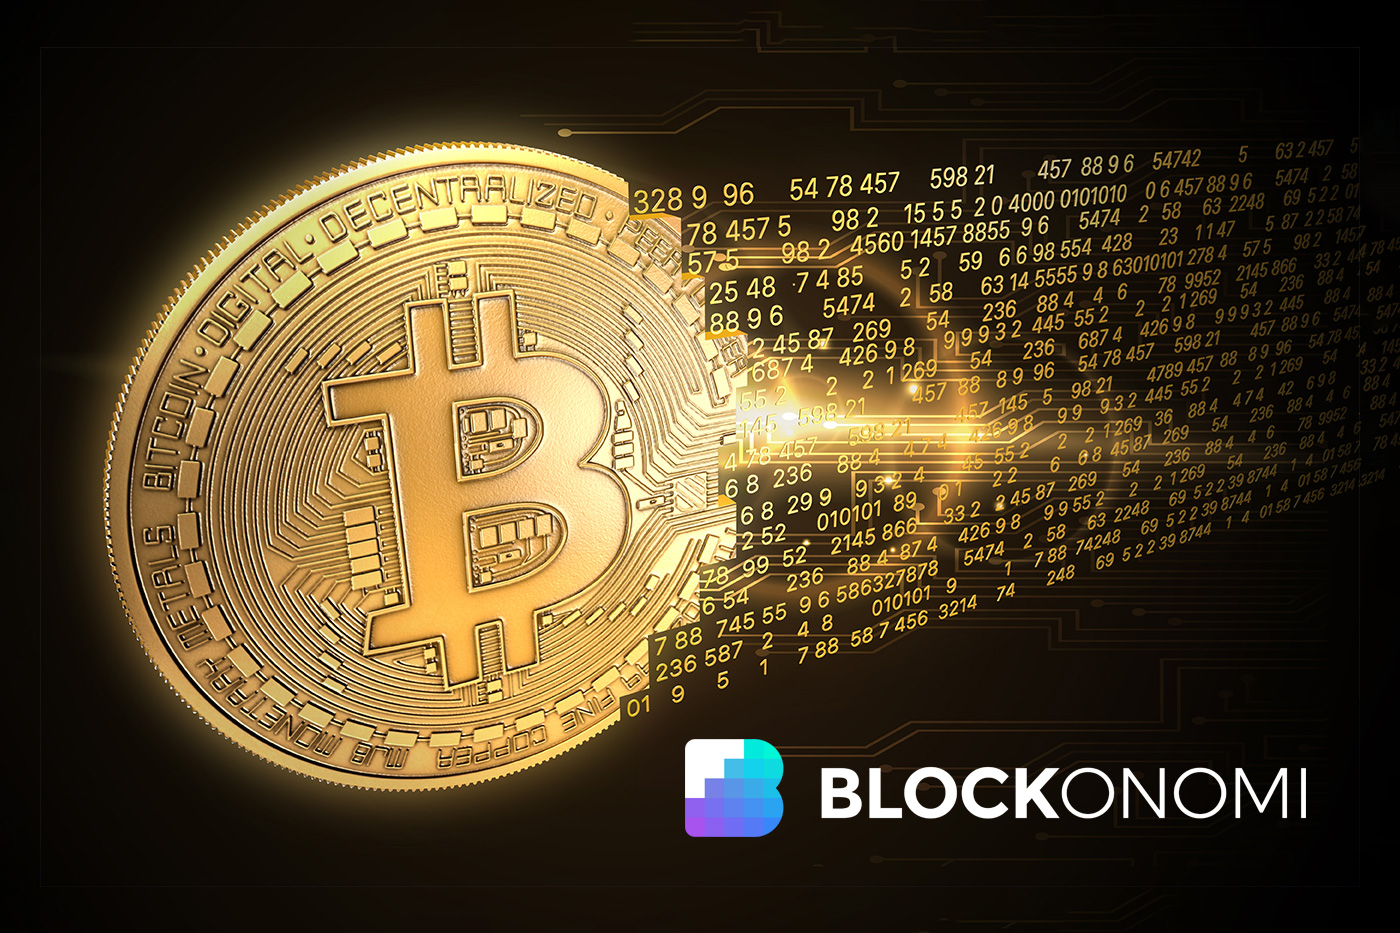 Bitcoin Funds Outperformed Hedge Funds In 2019: Boding Well for Crypto